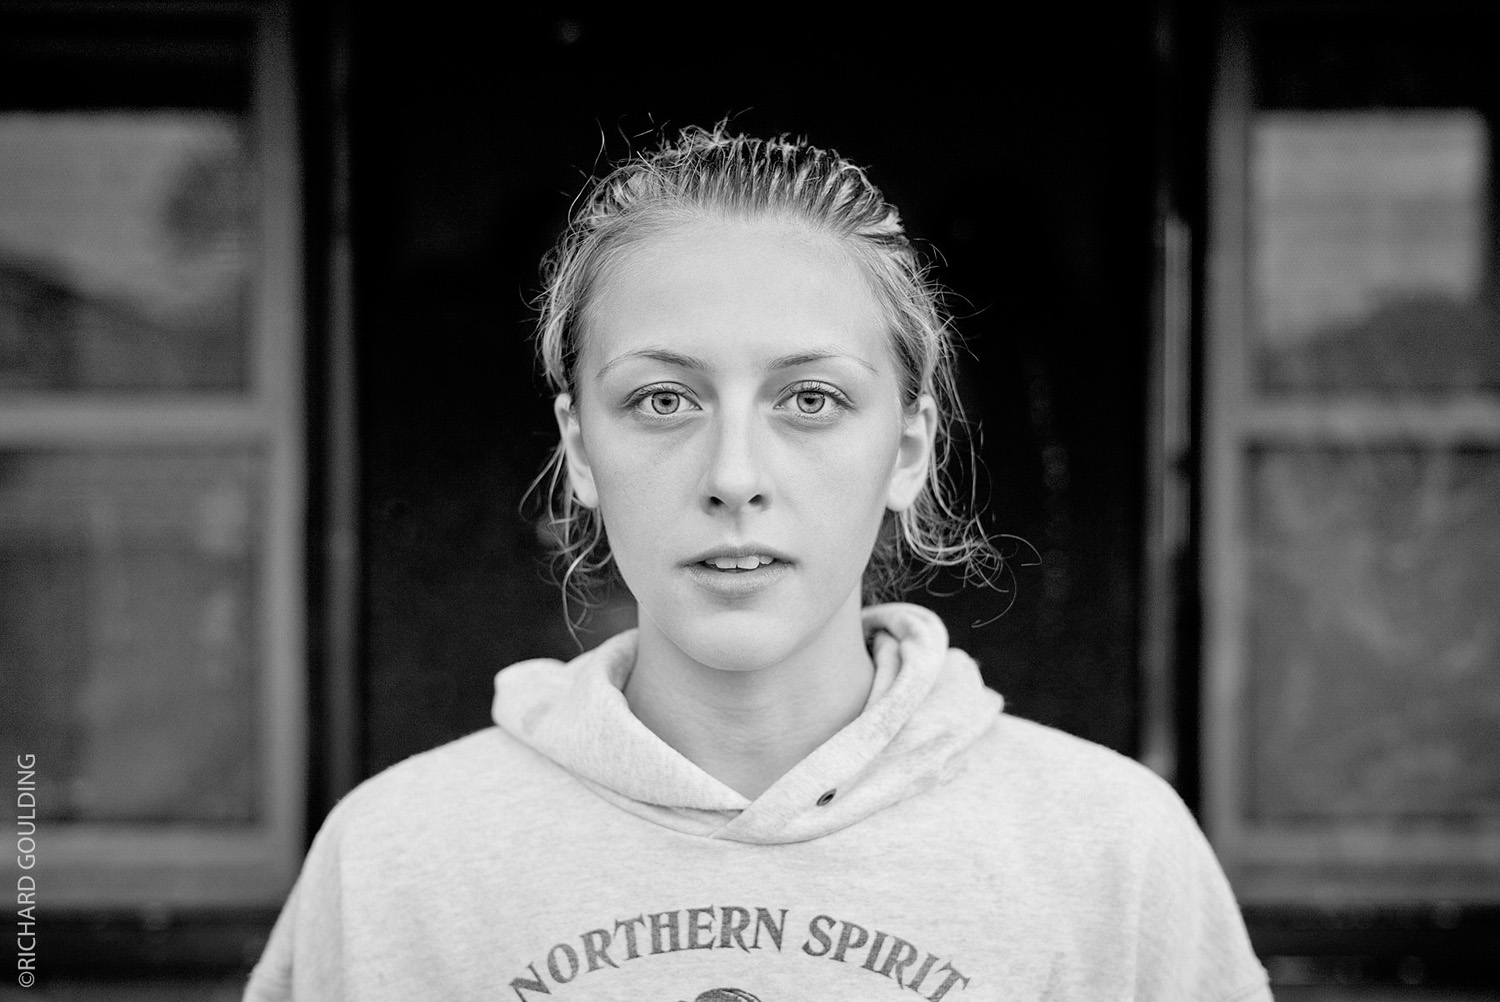 Dakota Ditcheva Manchester based Thai Boxer, training at Sale West. Running at Sale Water park, with here mother Lisa Howarth, by Richard Goulding Photographer